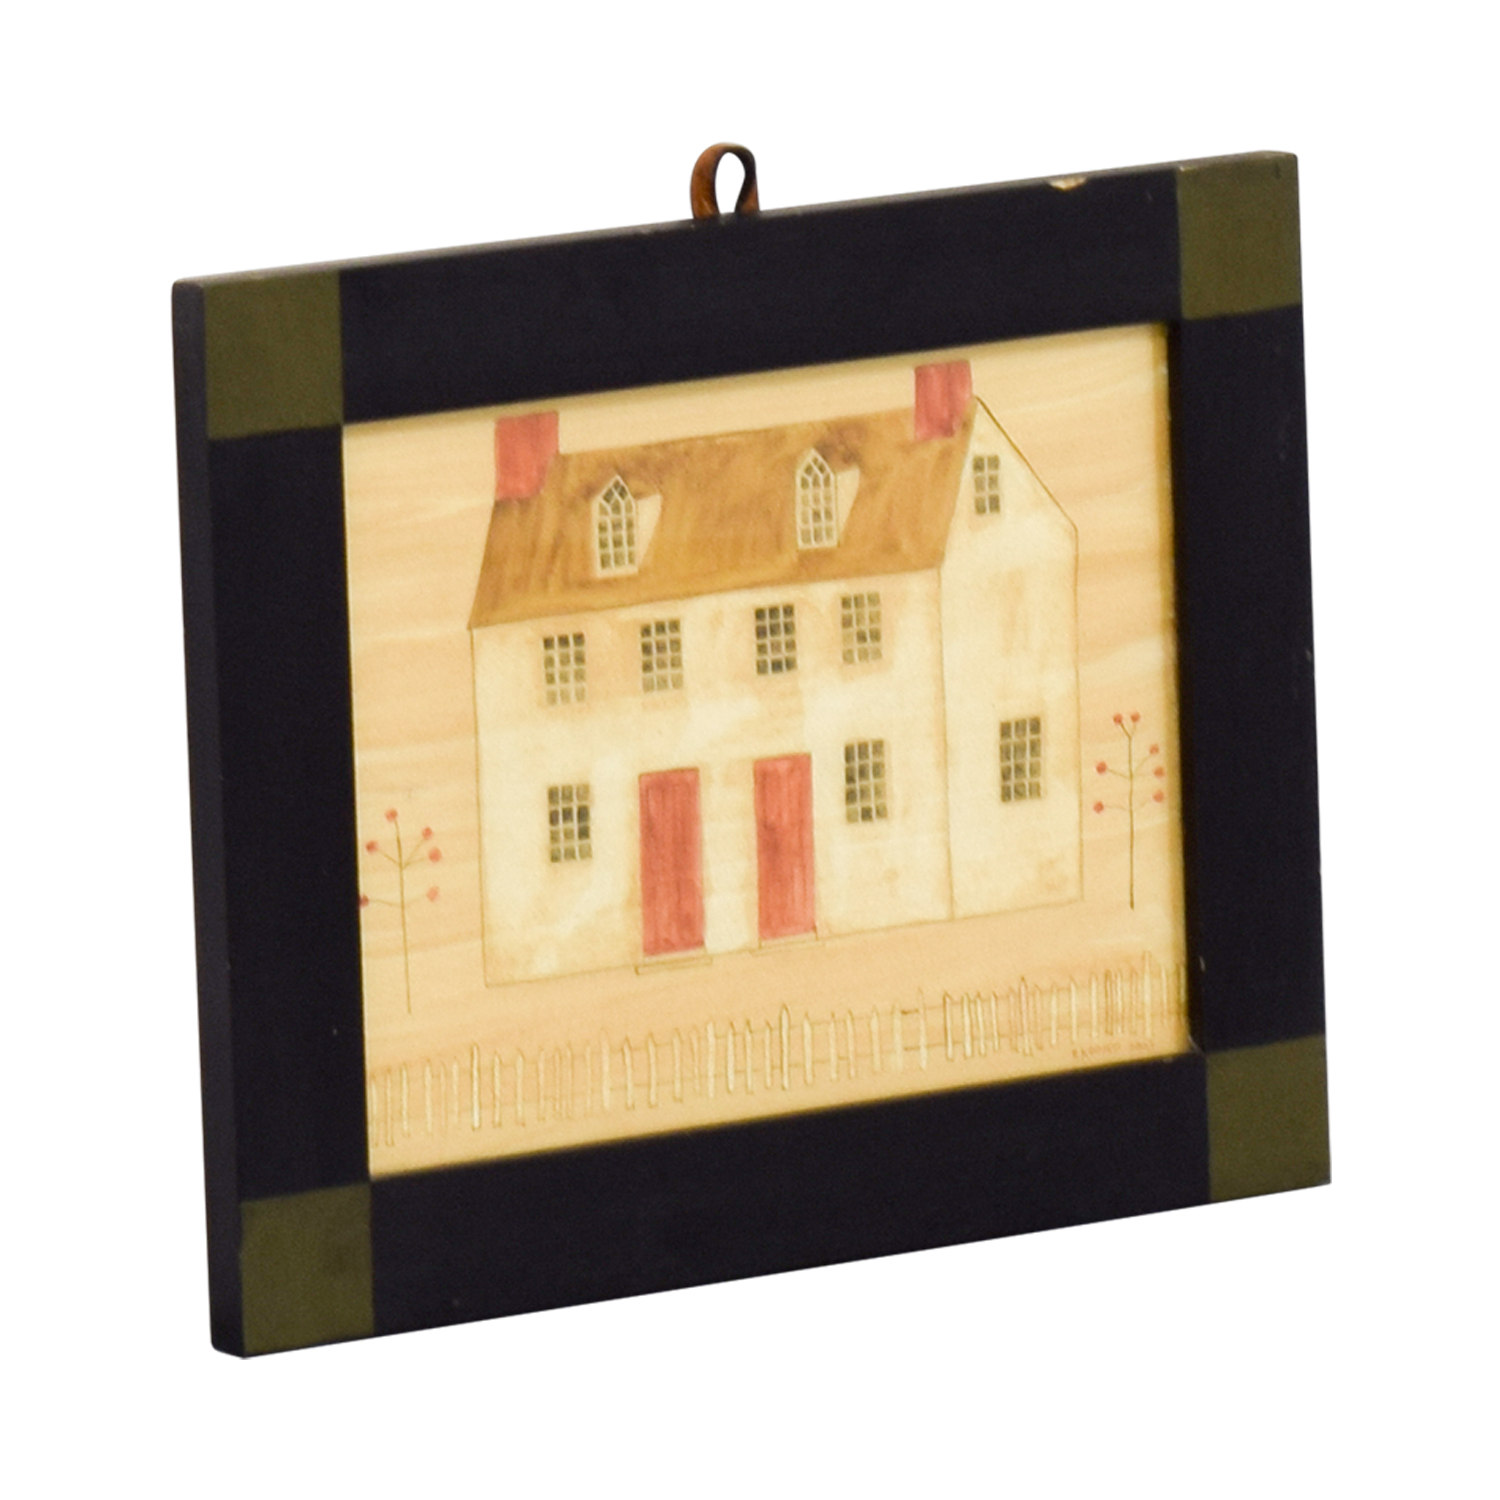 Framed Rustic Farmhouse Artwork on sale